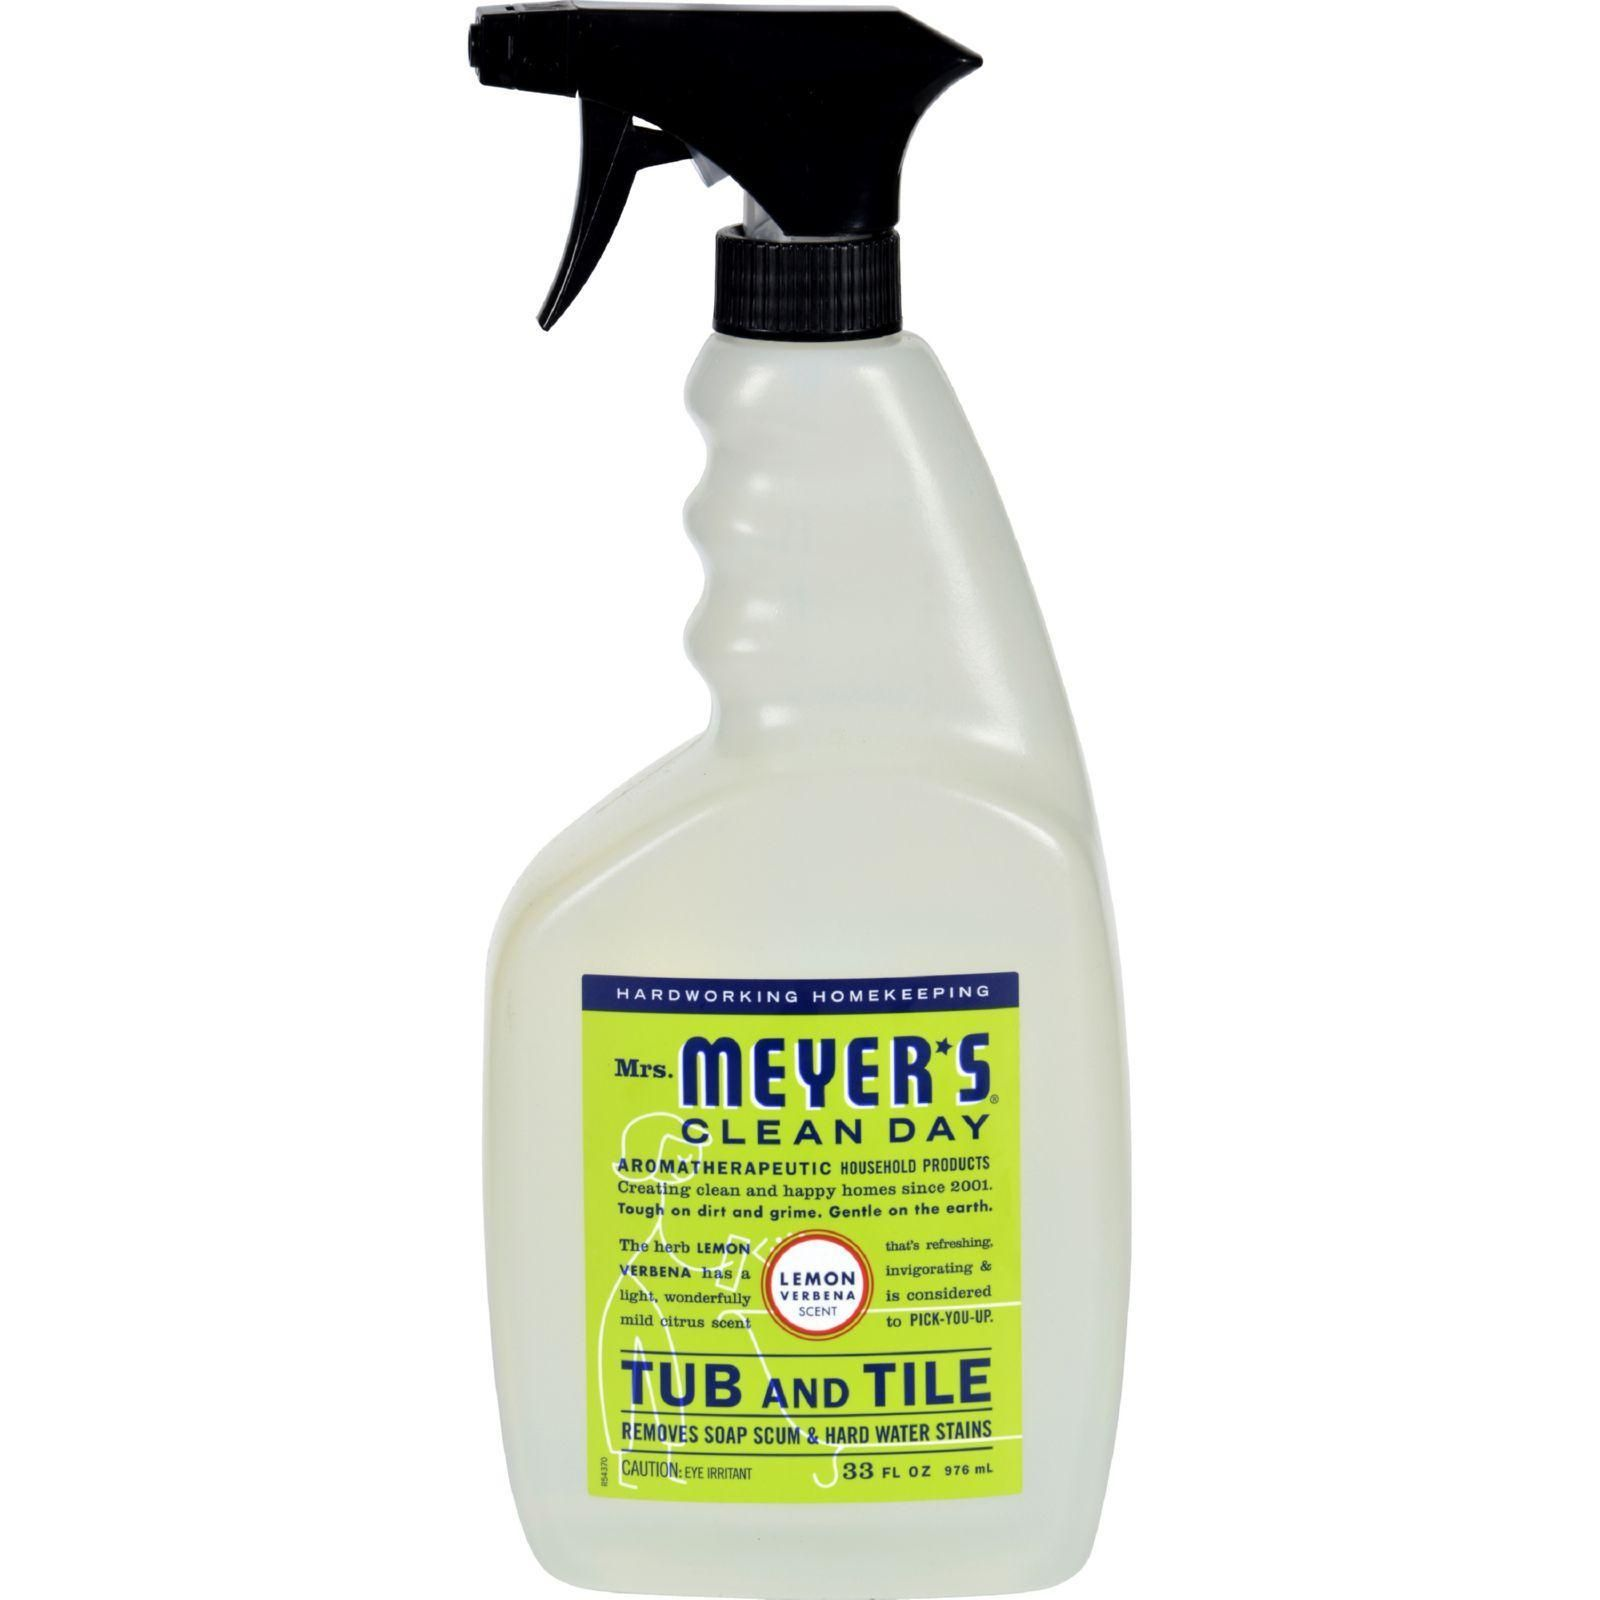 Mrs Meyer S Clean Day Tub And Tile Cleaner Removes 4x More Soap